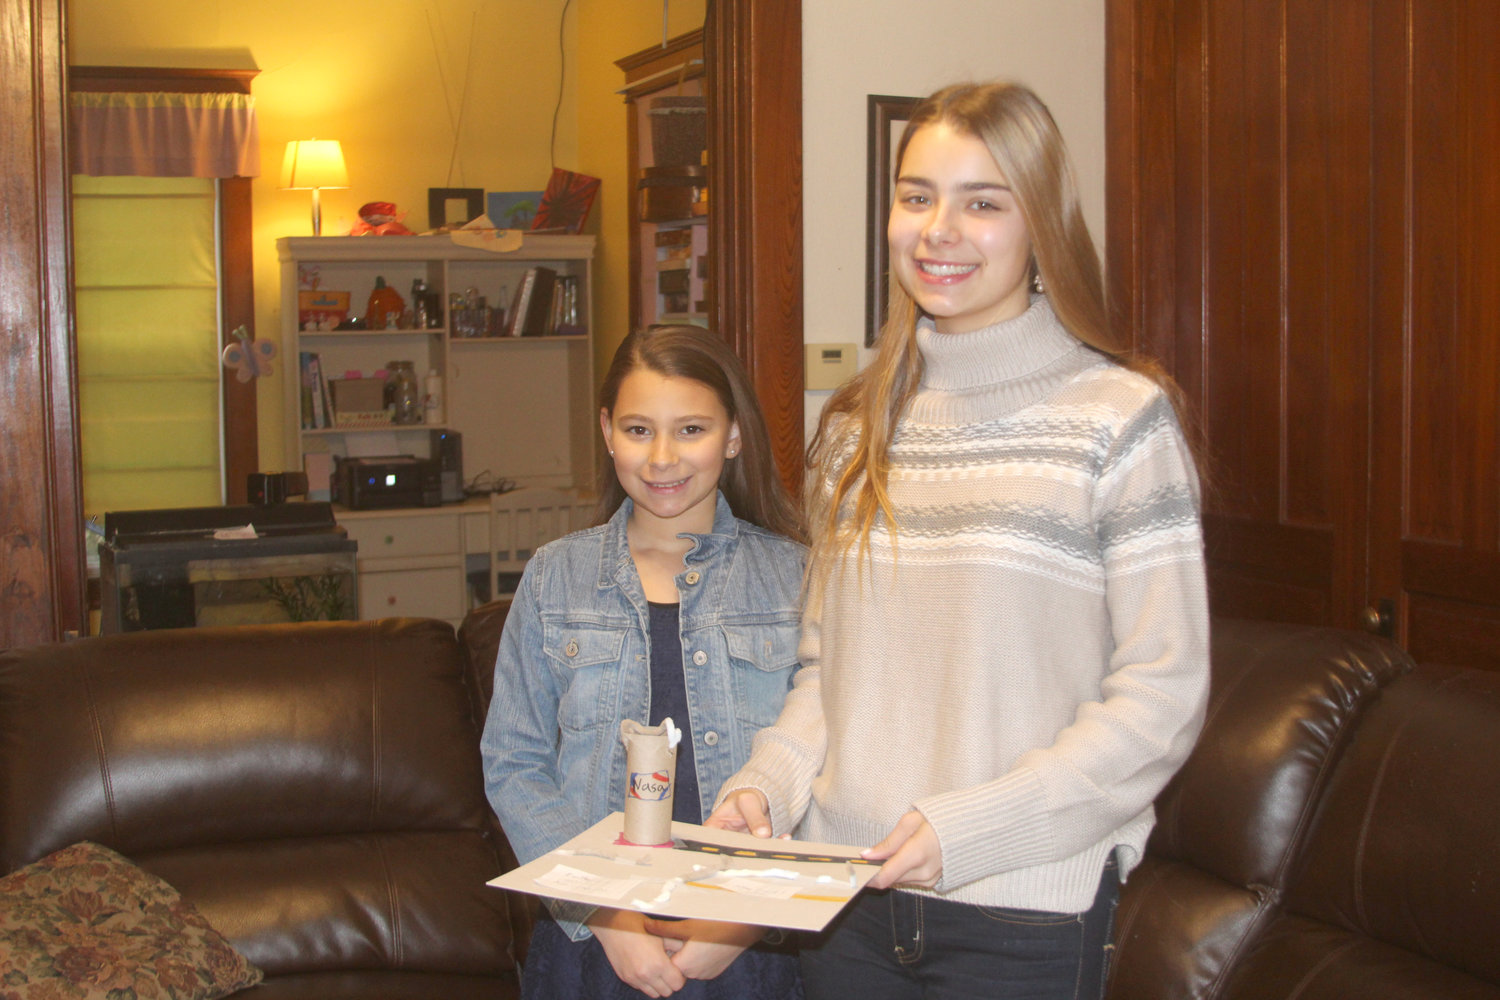 Lilou Beachy (right) and her 11-year-old sister, Maëlys, show off a rocket pad project Maëlys made in celebration of Lilou being named a national semi-finalist in the Name the Rover contest.